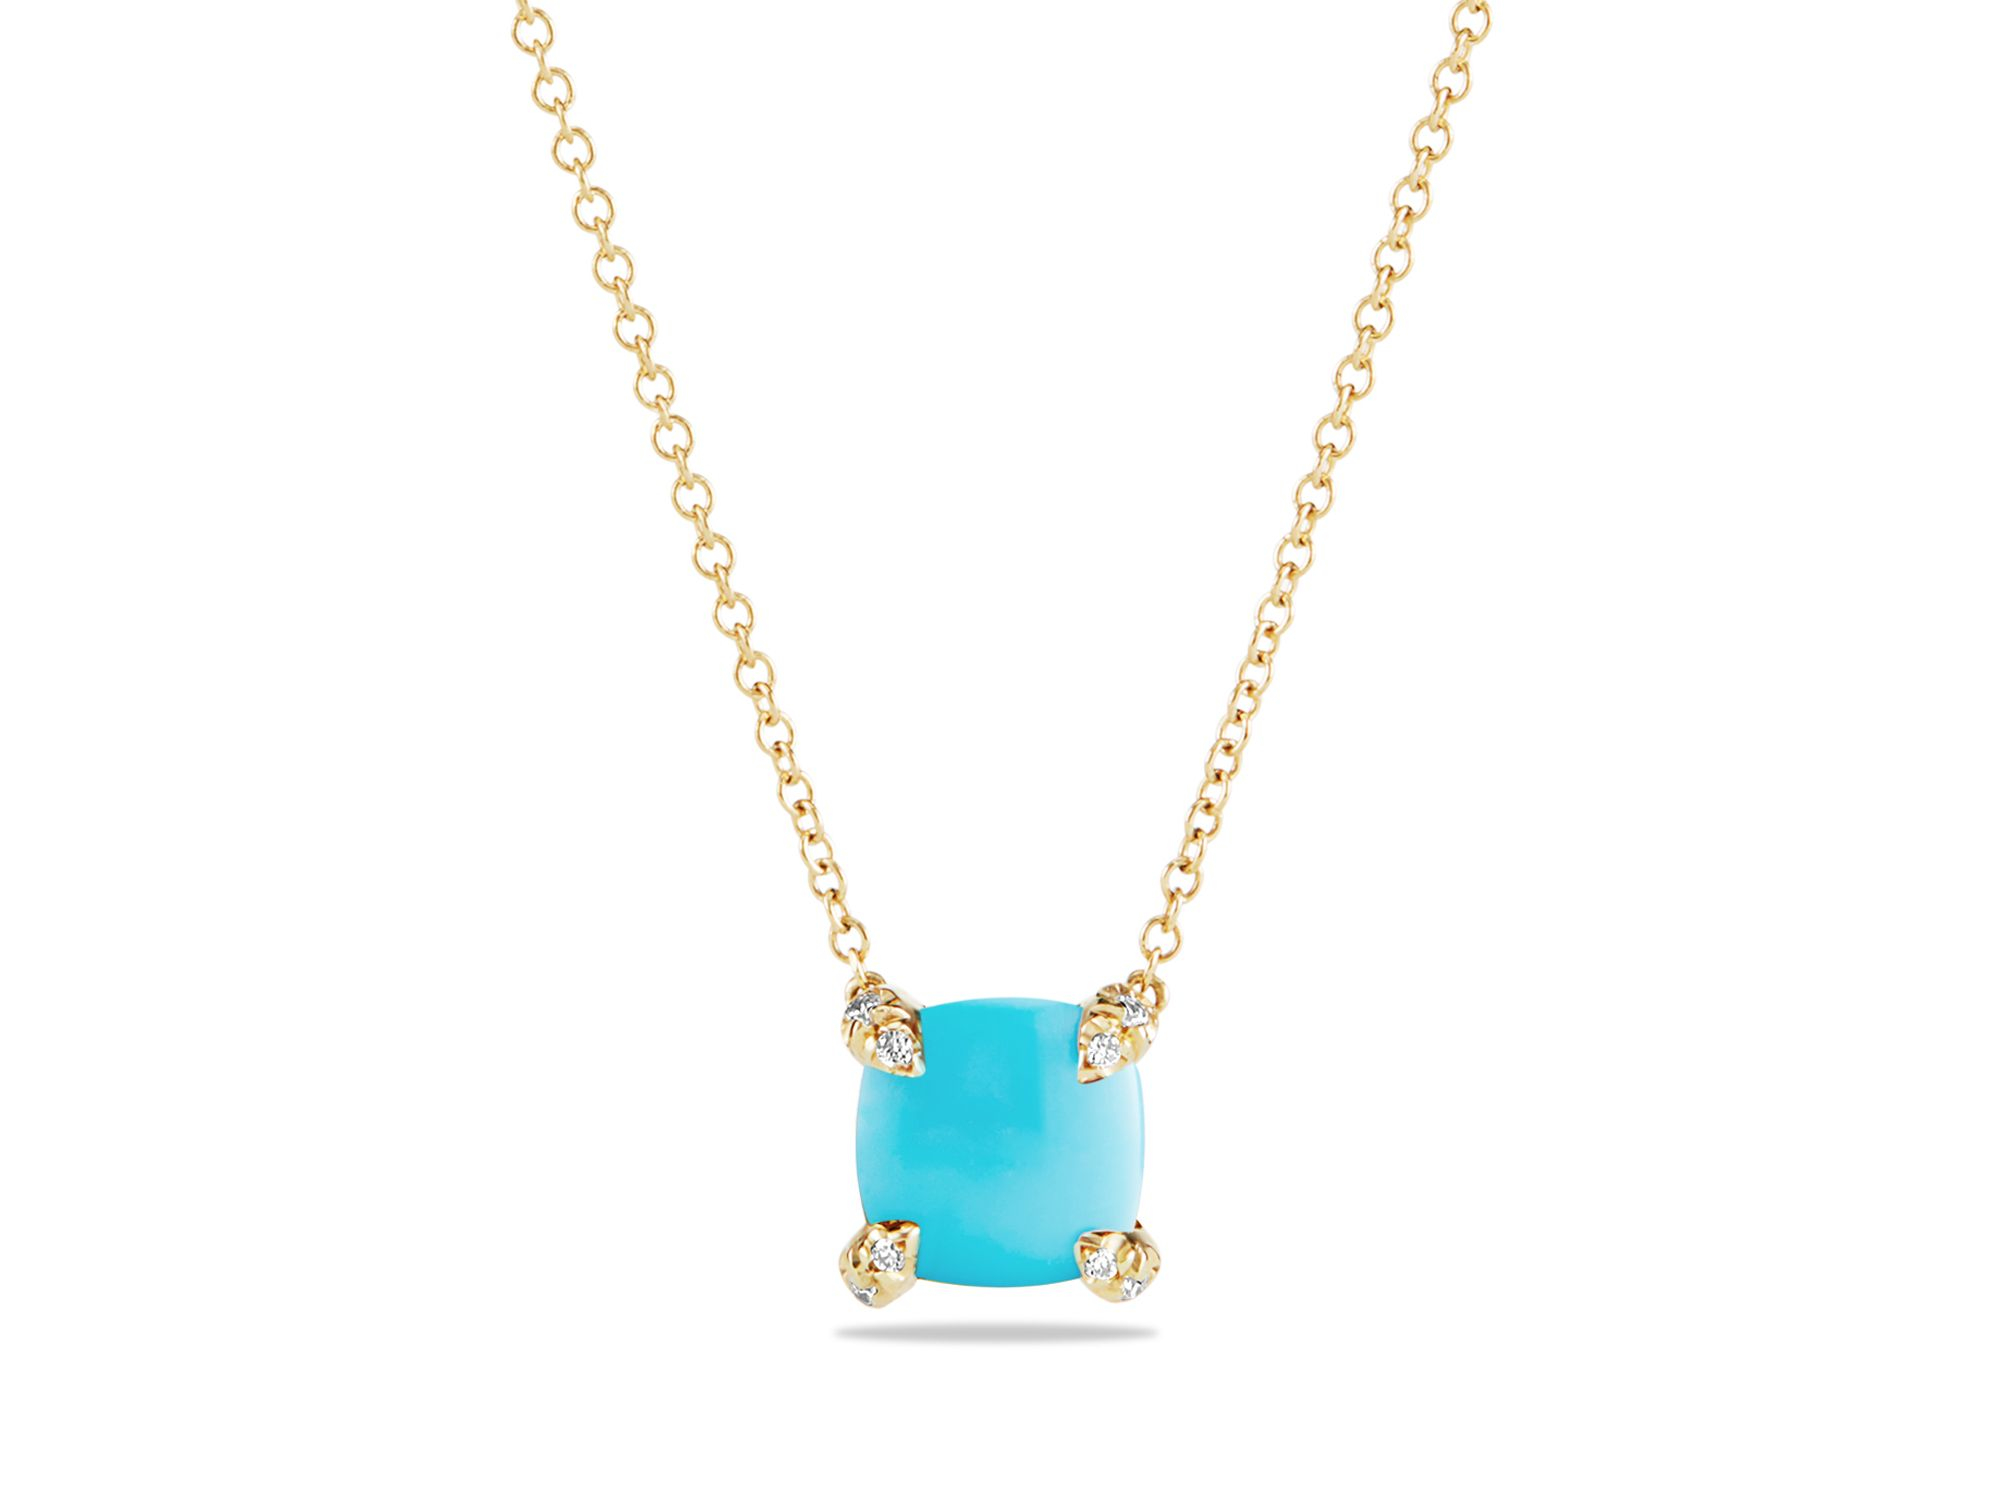 David Yurman 18kt yellow gold Châtelaine turquoise and diamond pendant necklace - Metallic Tyw9EWRrL6